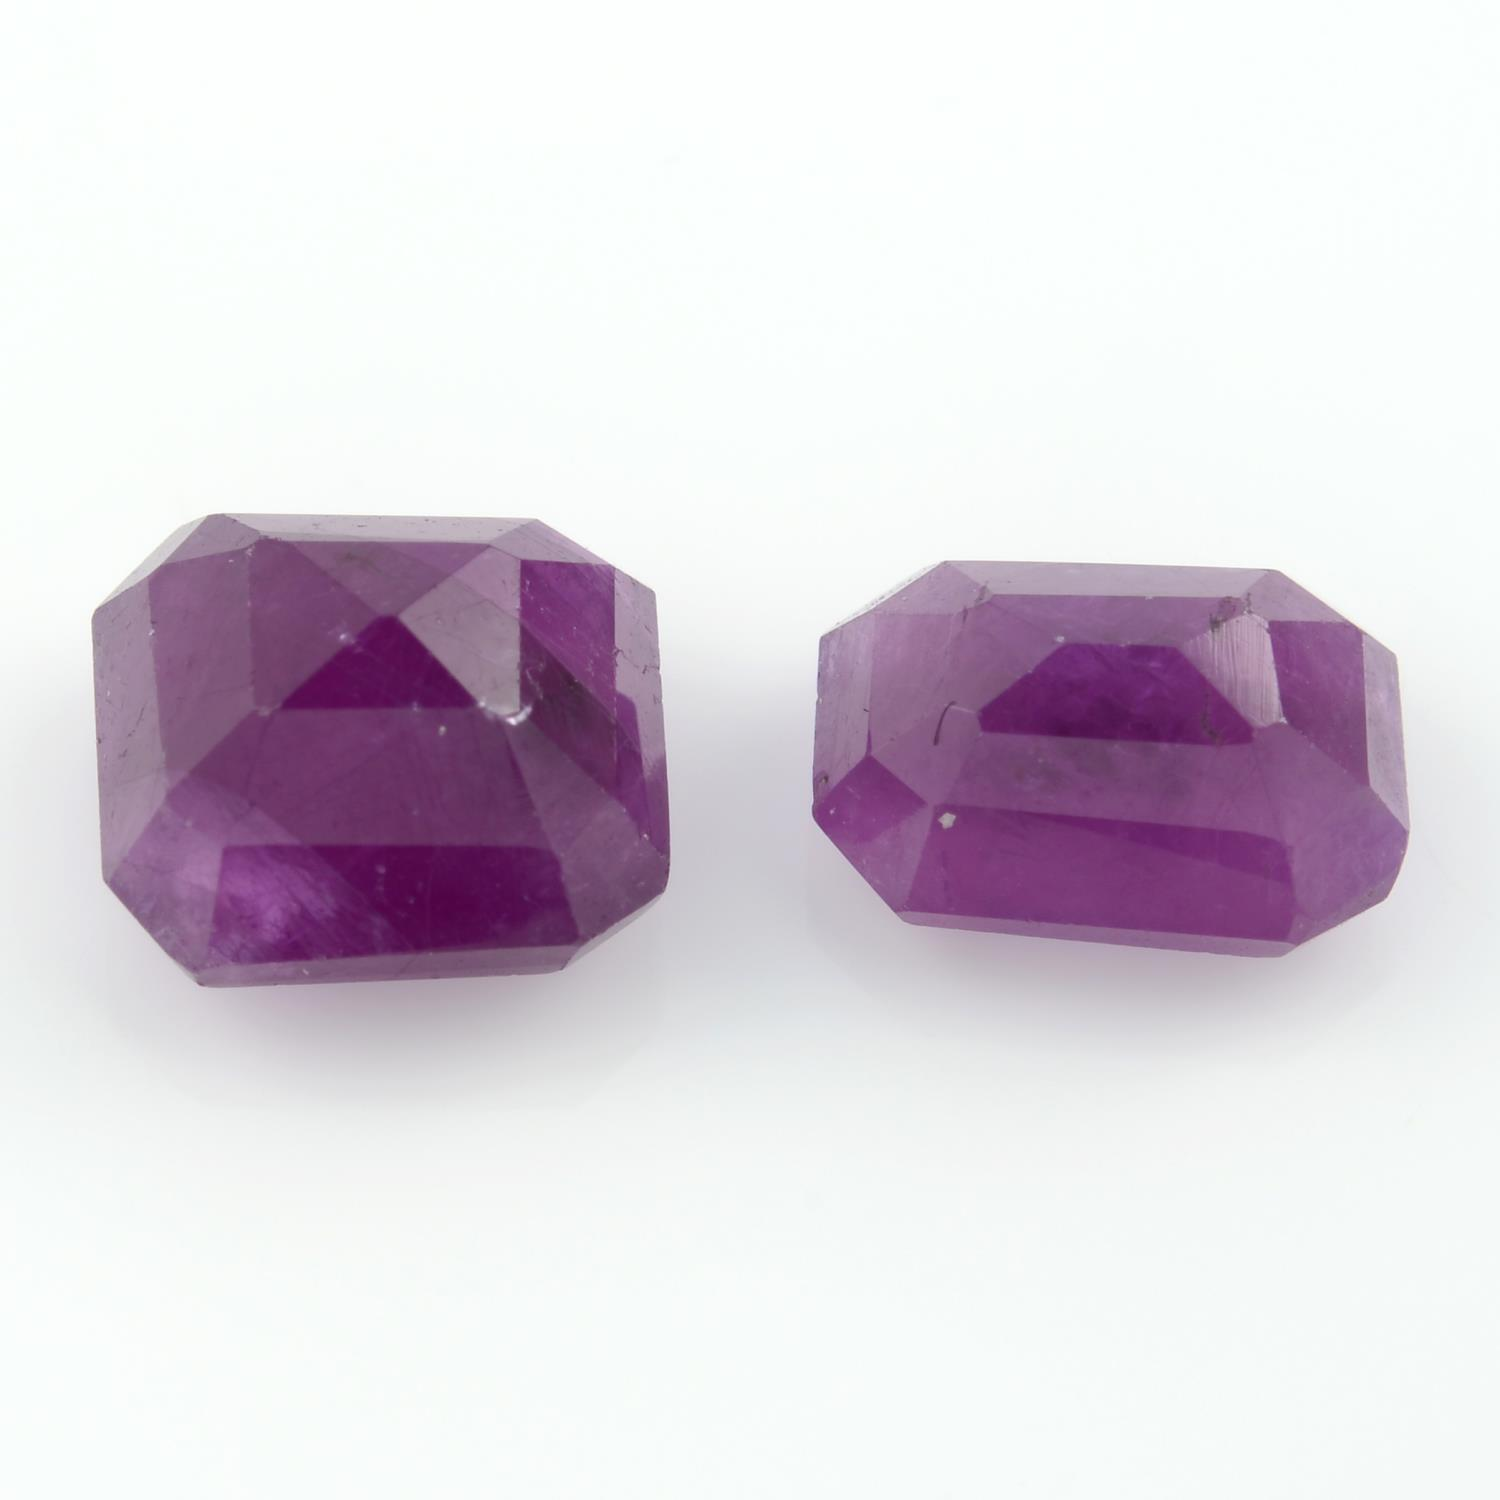 Two unheated rectangular shape rubies, weighing 5.04ct. - Image 2 of 4